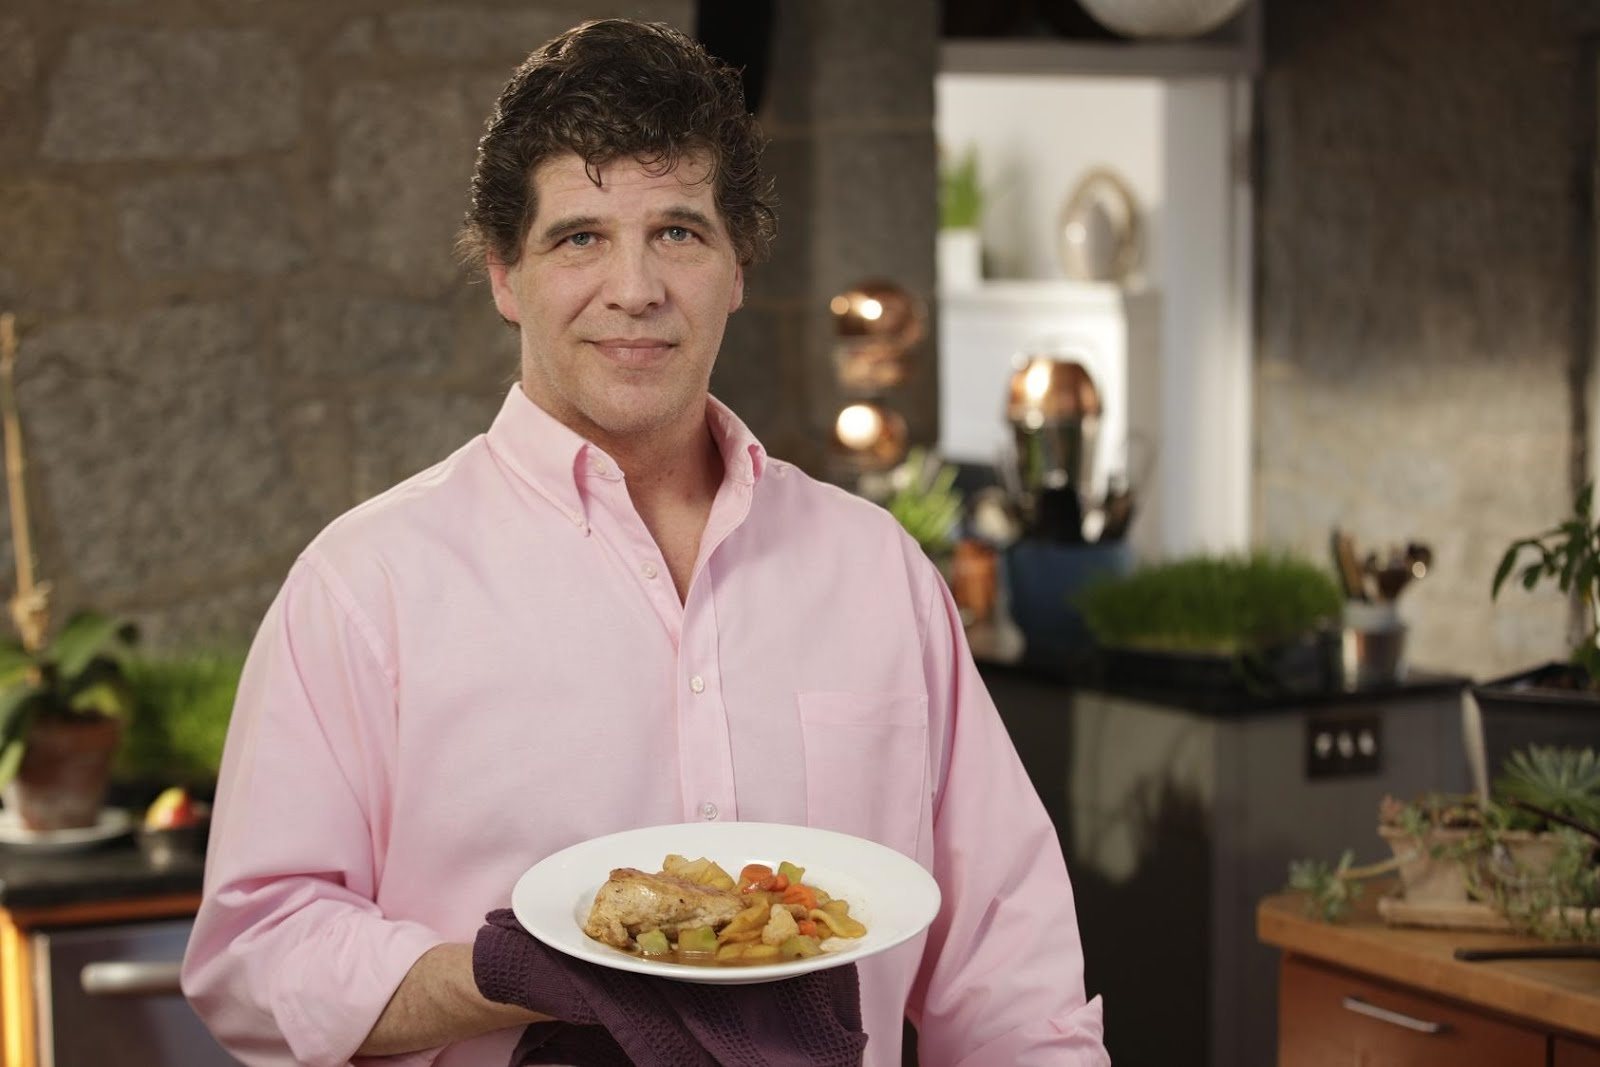 Check out The Yankee Chef, King of Comfort Food